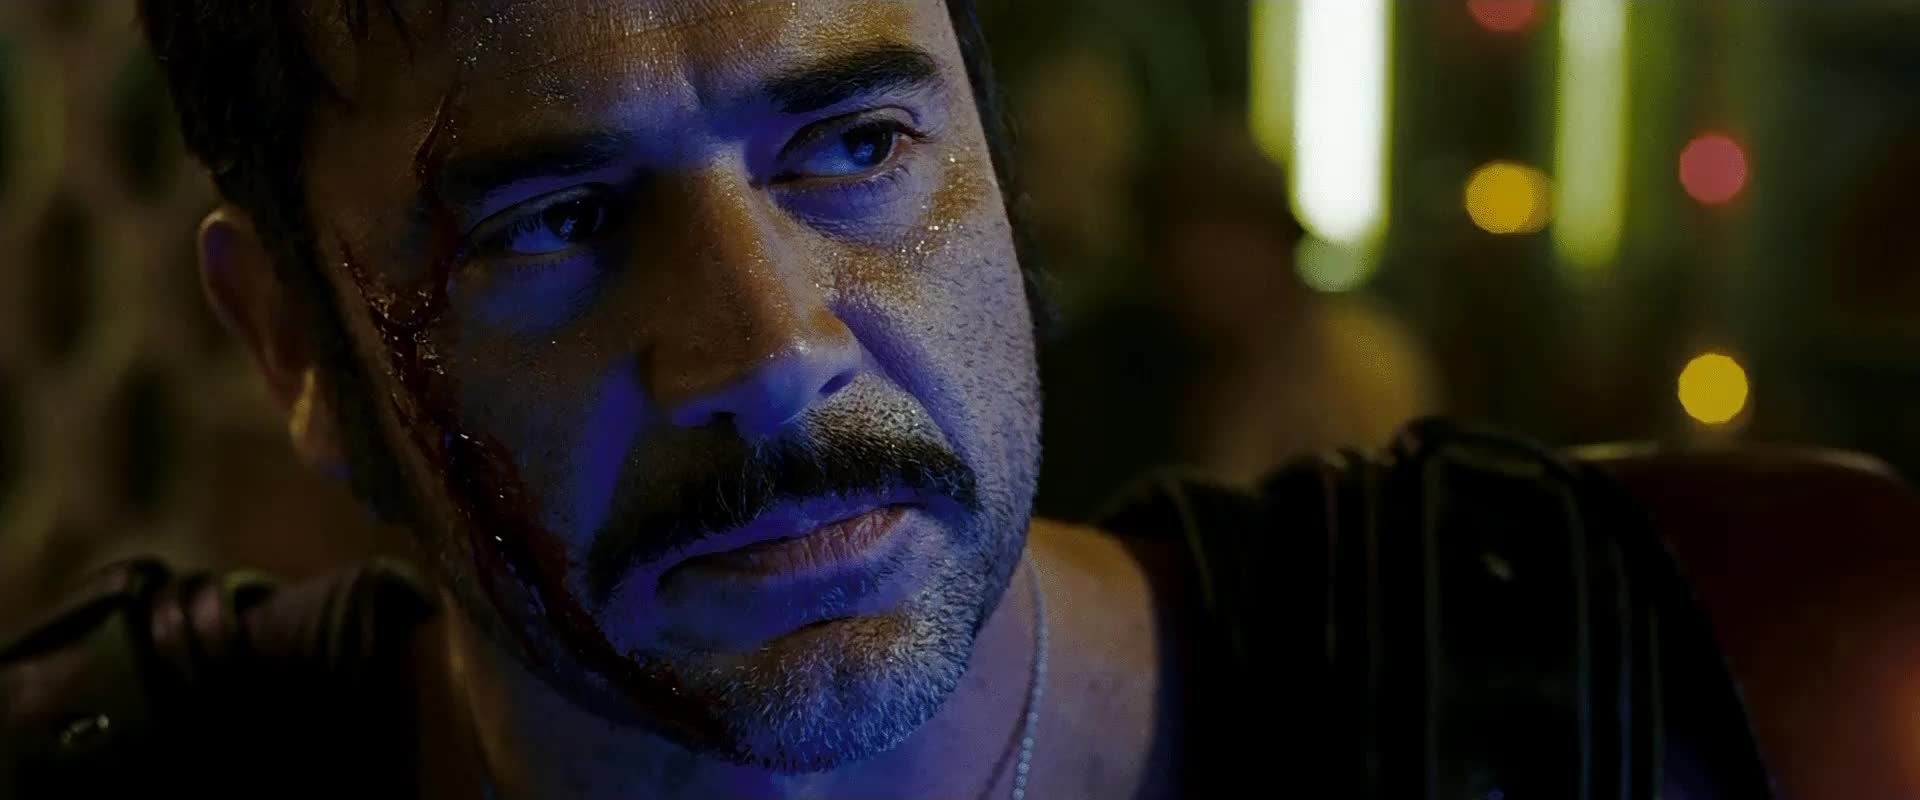 jeffrey dean morgan, God help us all GIFs